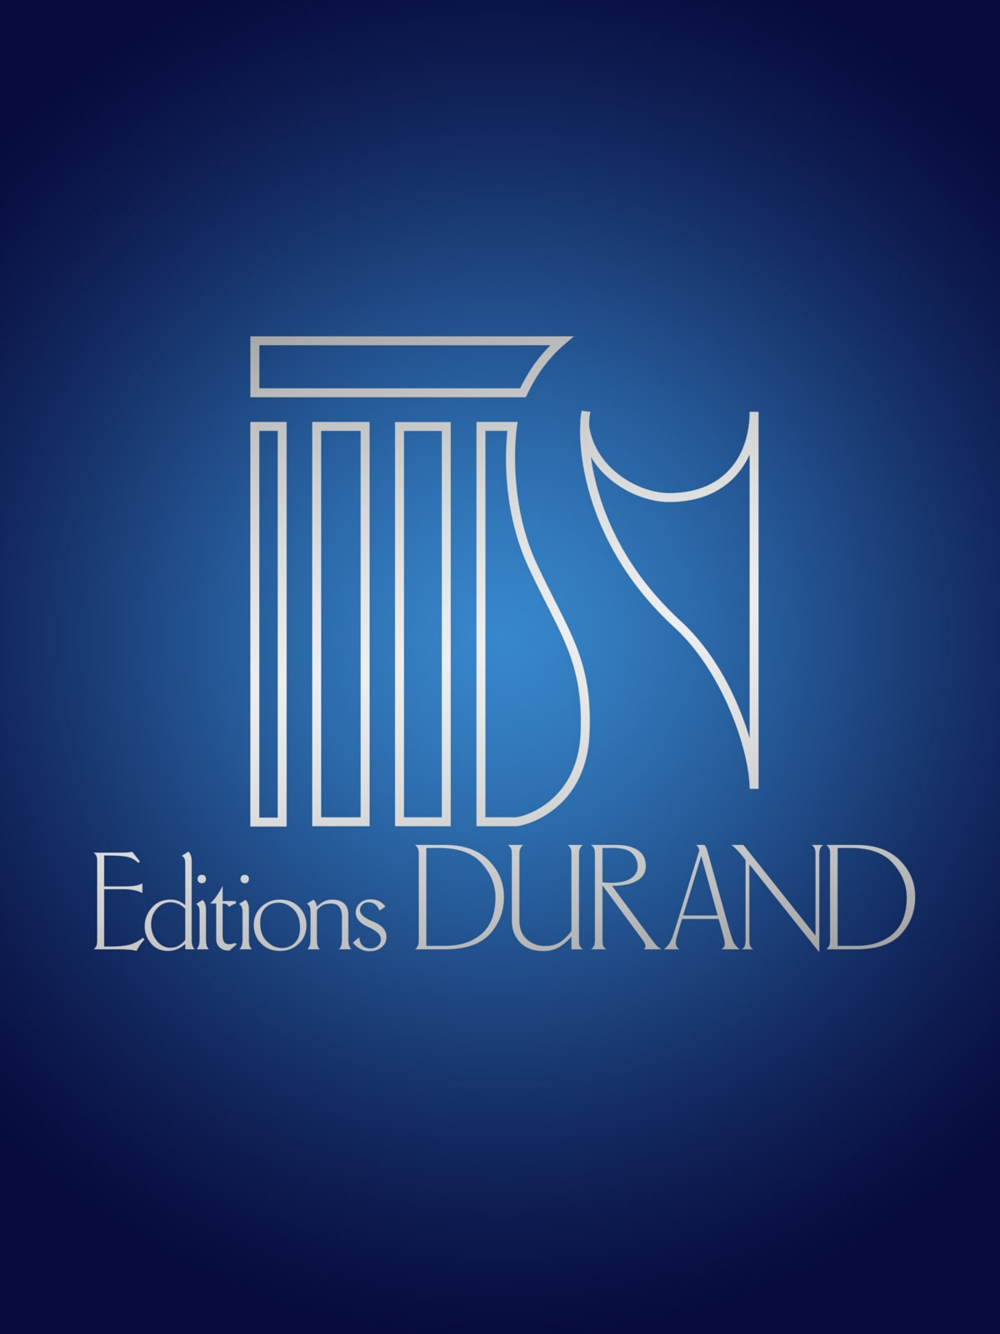 Durand Sonate en deux mouvements (for Tuba in C (B.C.) and Piano) Editions Durand Series... by Durand